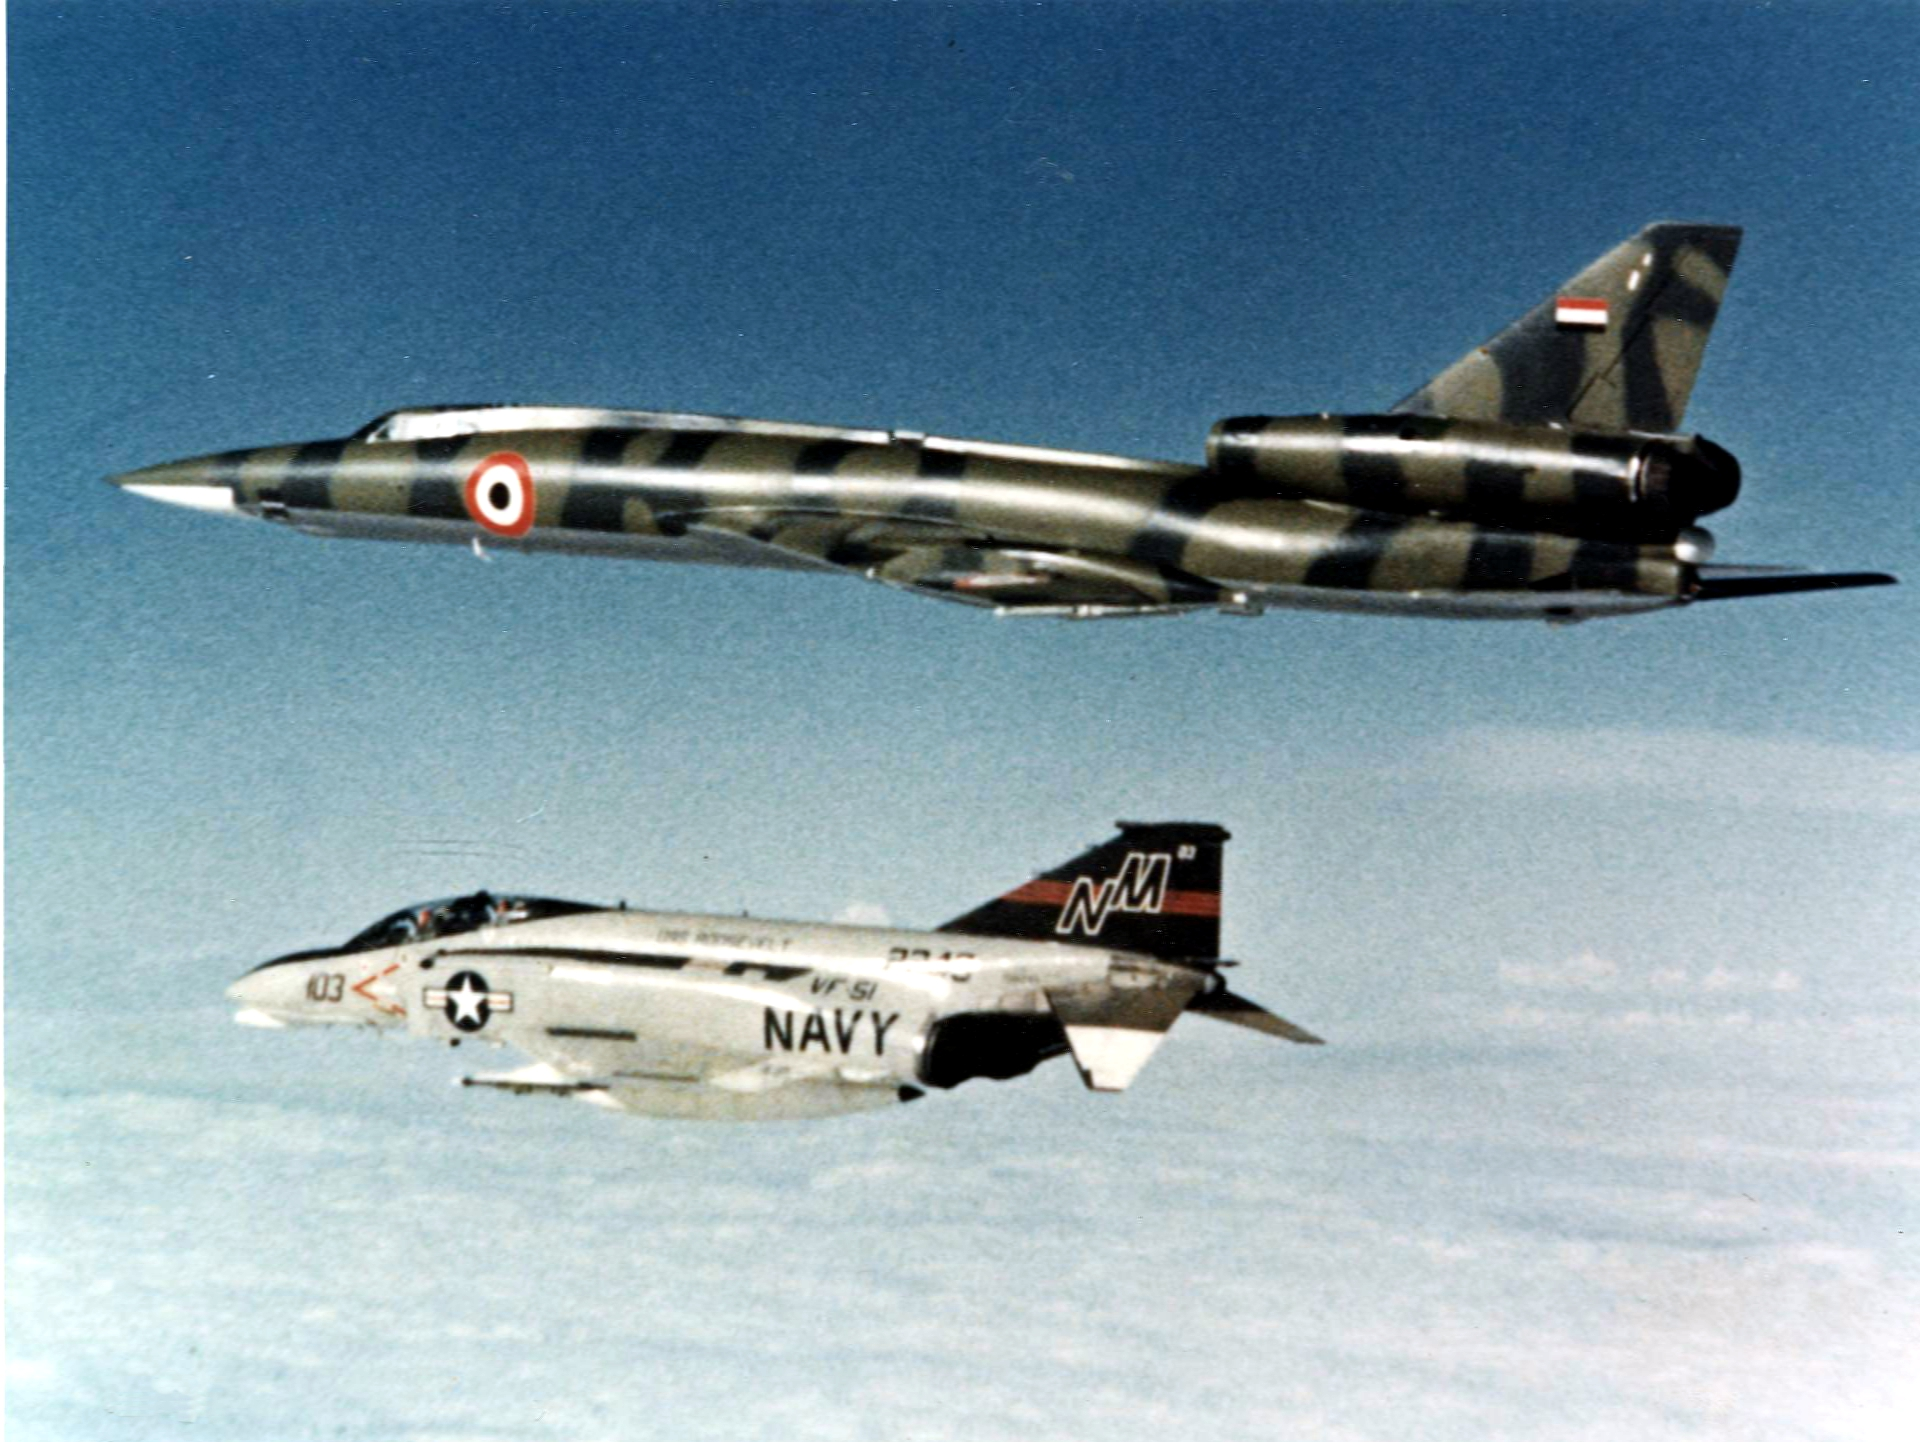 f-4n_of_vf-51_intercepts_libyan_tu-22_1977